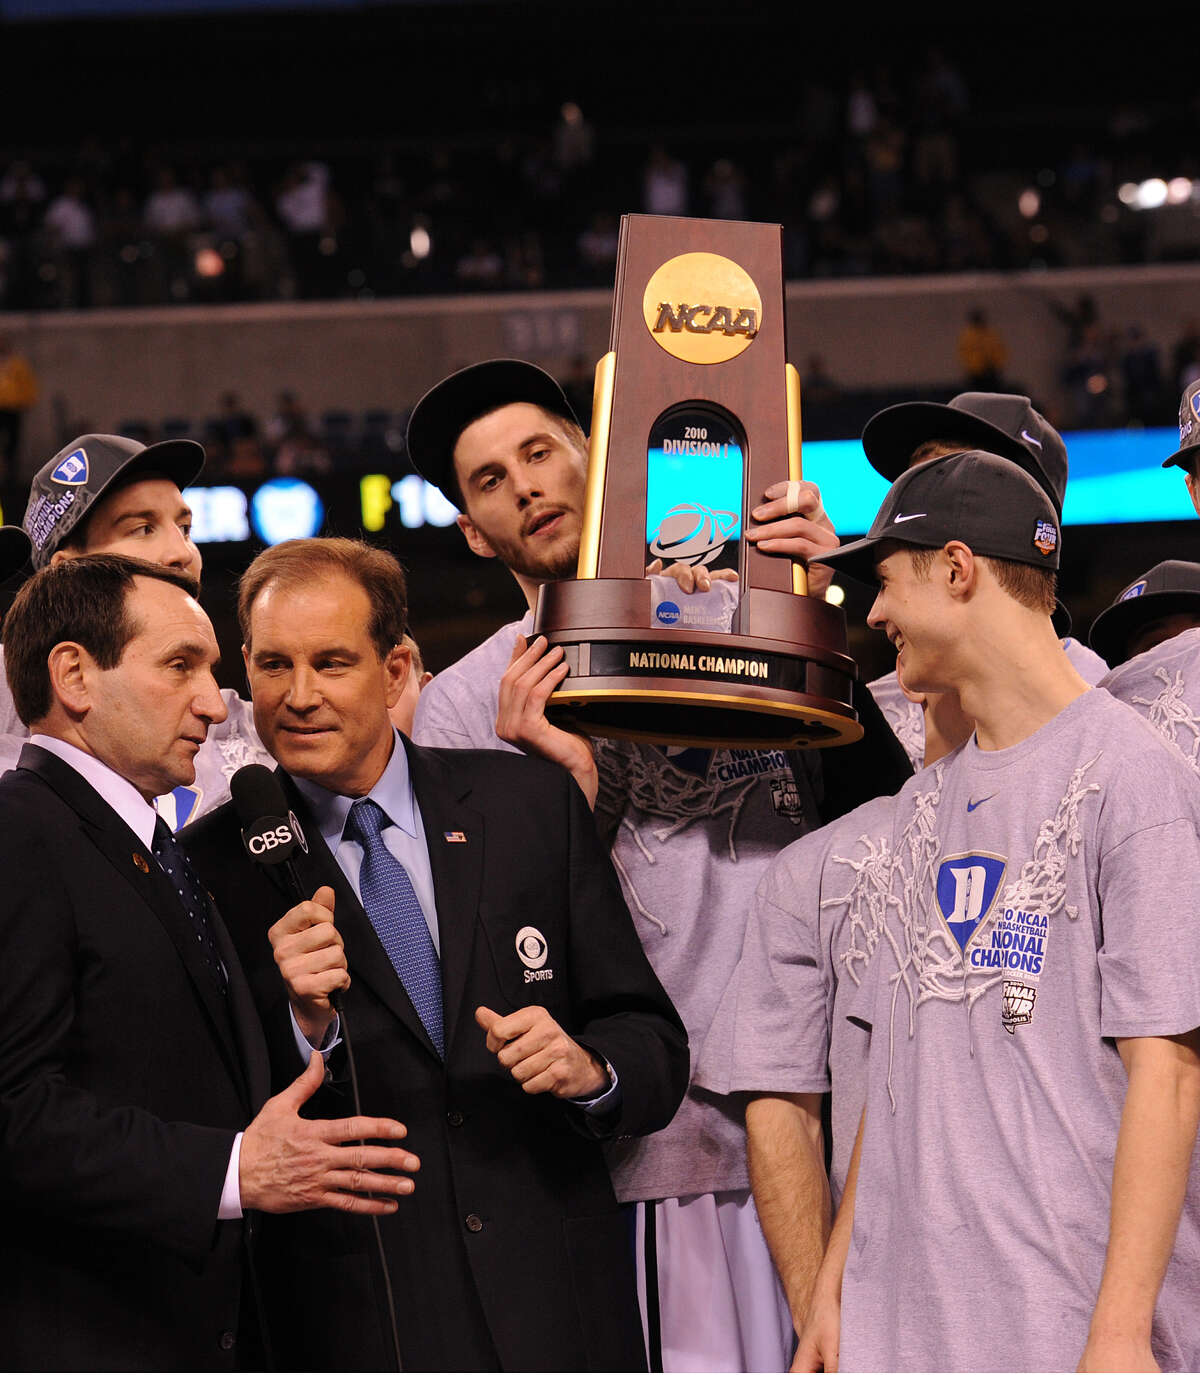 Jim Nantz interviews Duke coach Mike Krzyzewski after their title in 2010. Nantz goes right from the Final Four to covering the Masters. (Jeffrey R. Staab / CBS)